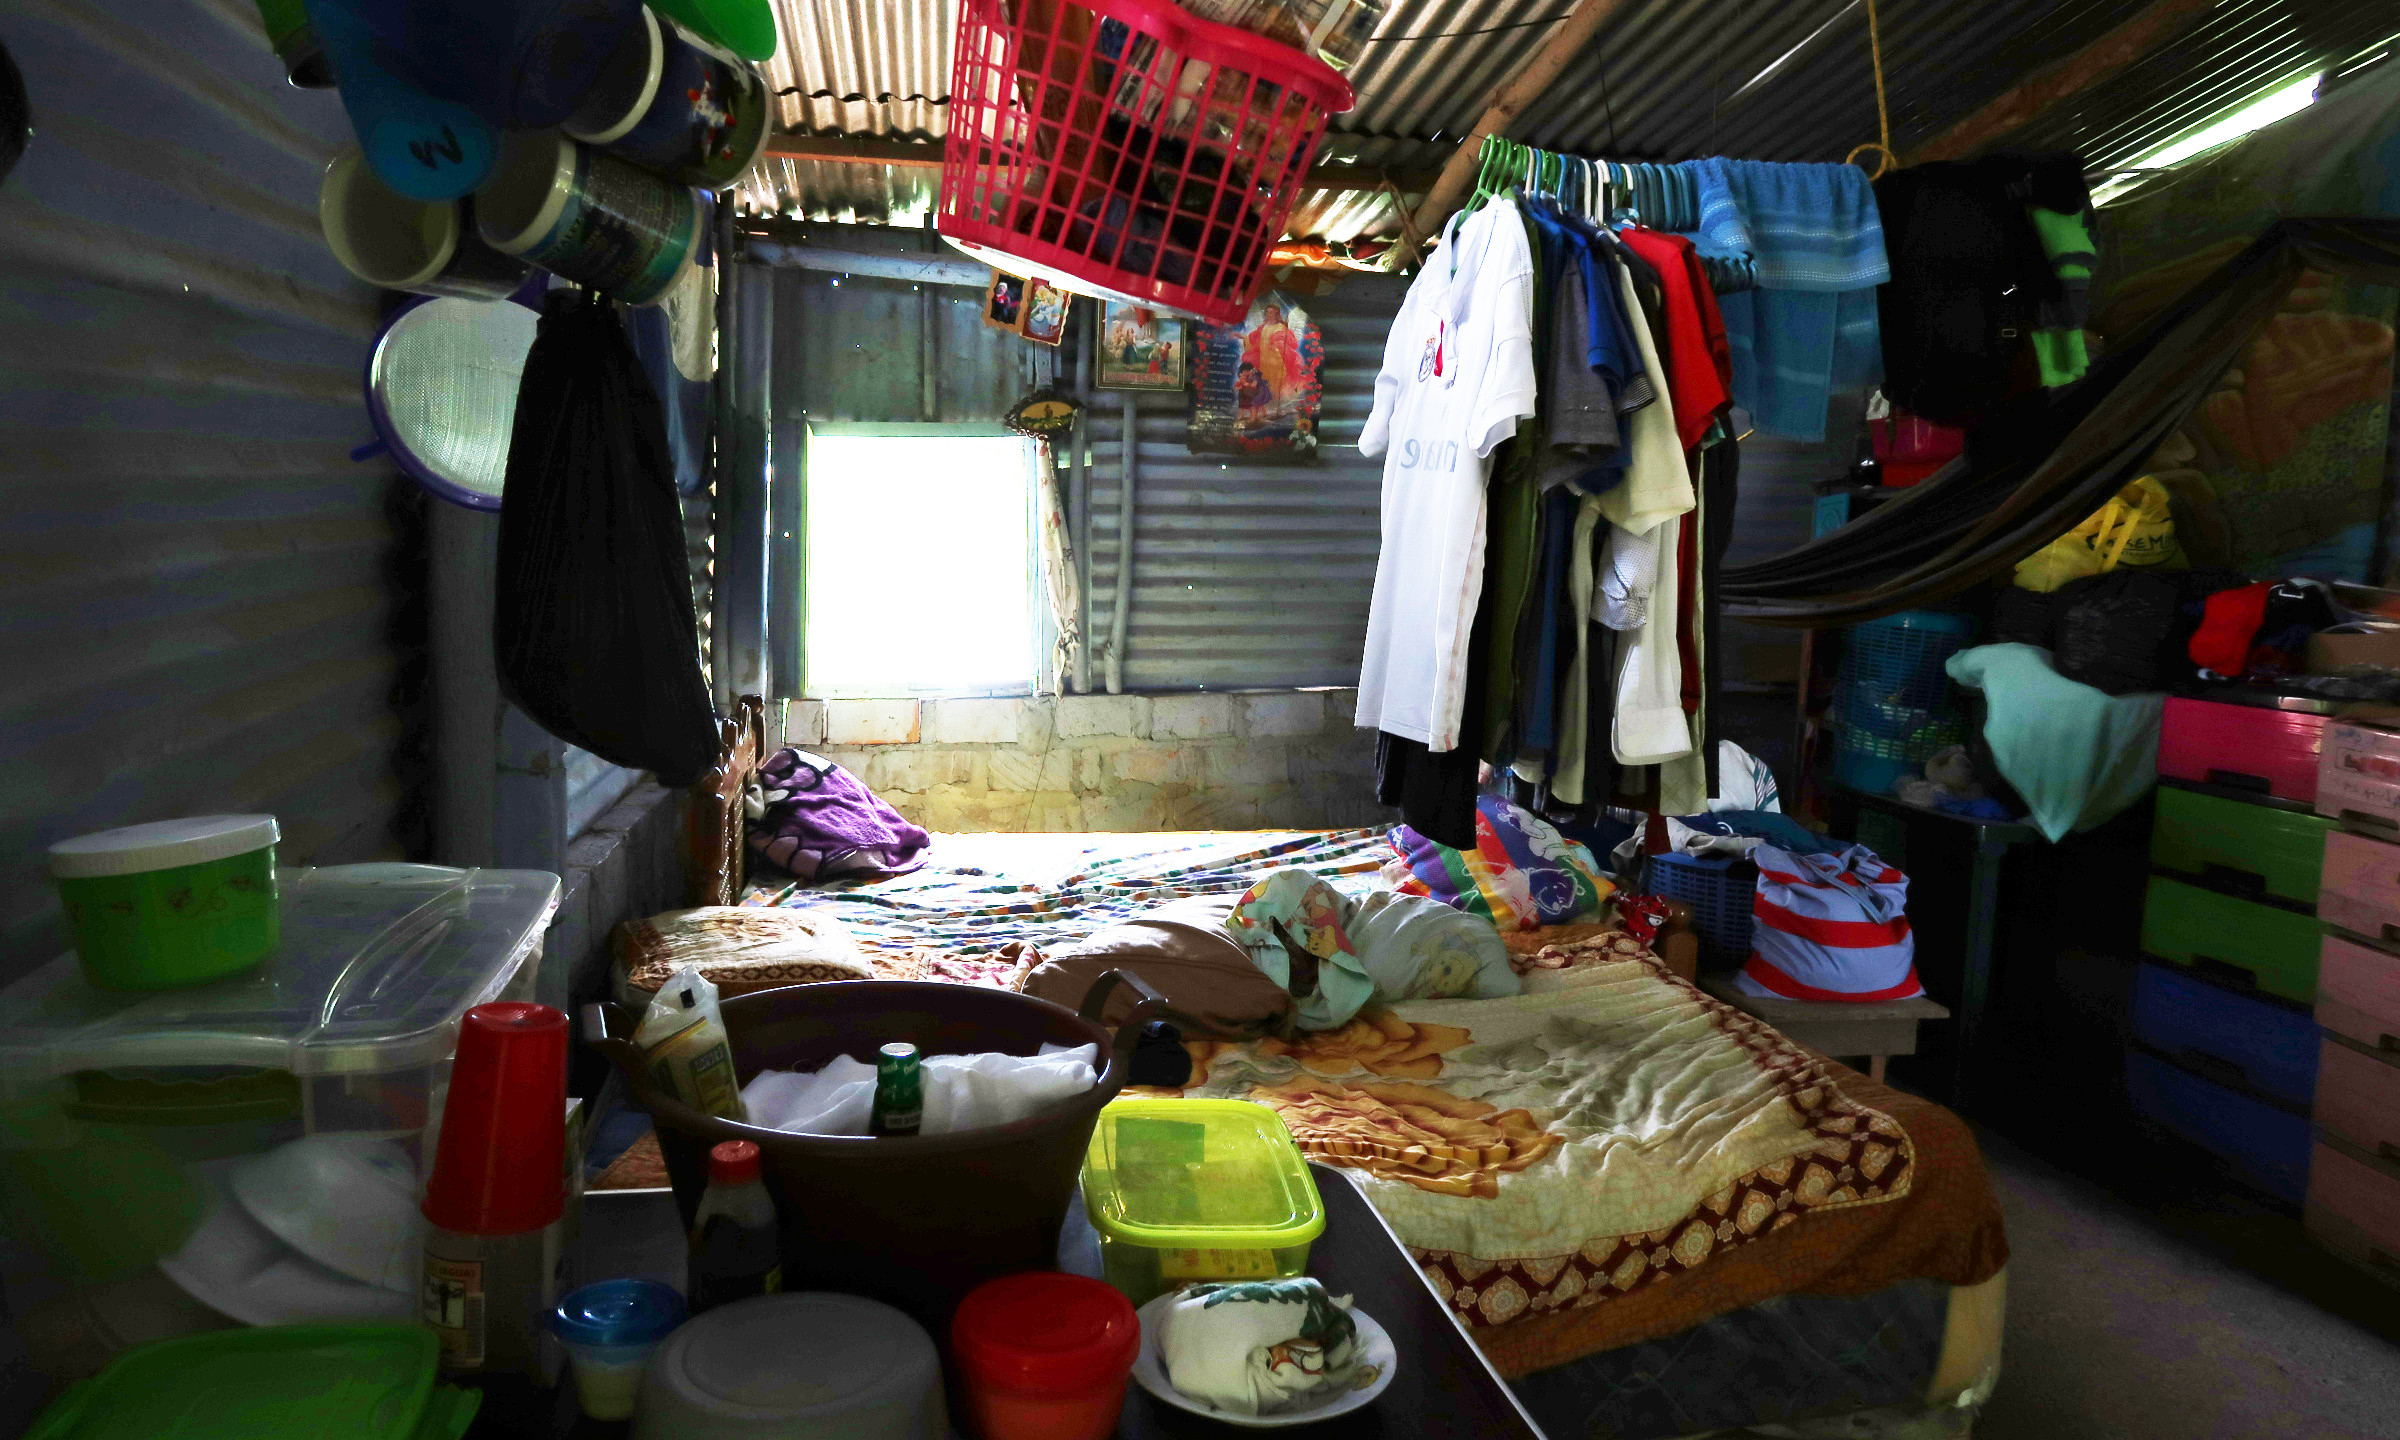 Typical 1 room home